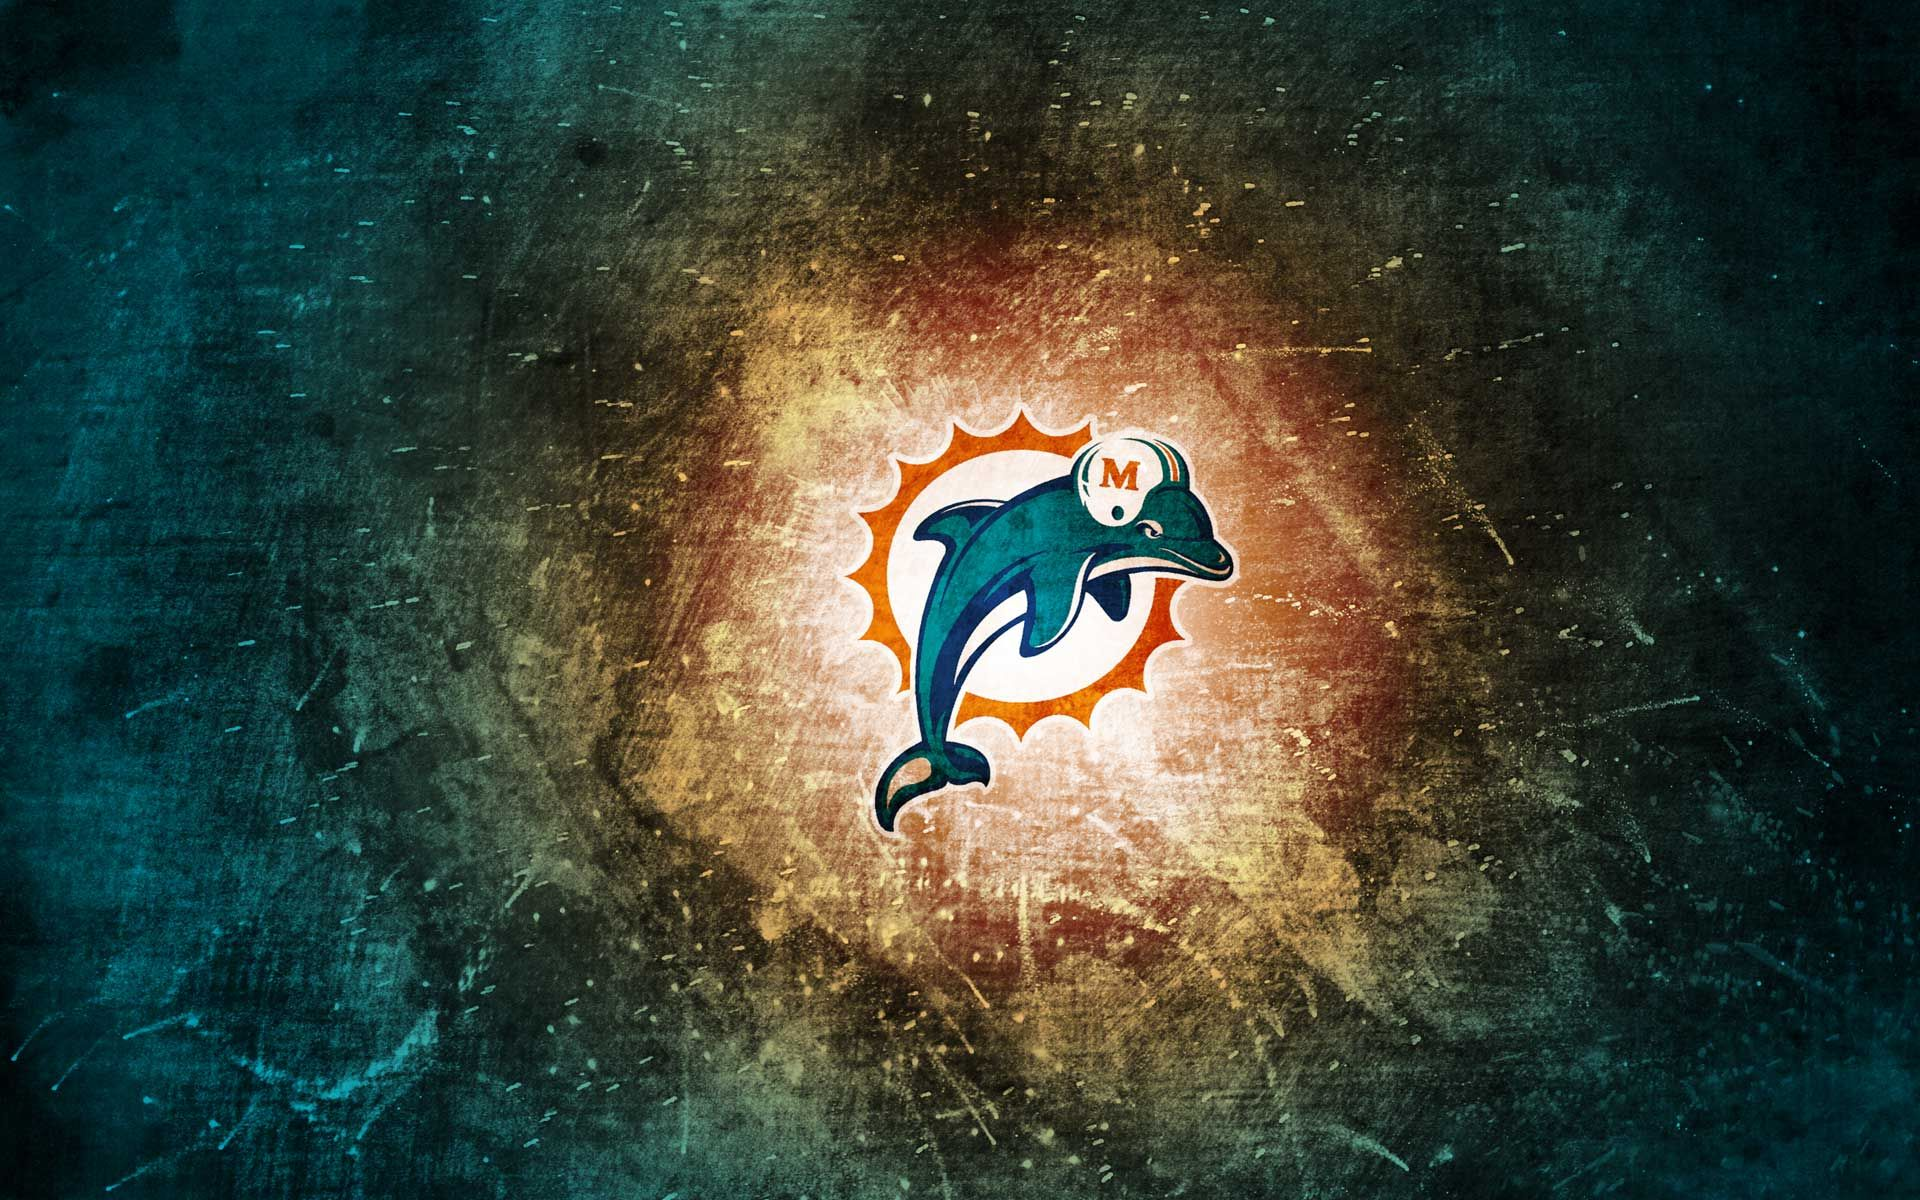 New dolphins Logo HD Wallpaper 1080p Miami dolphins